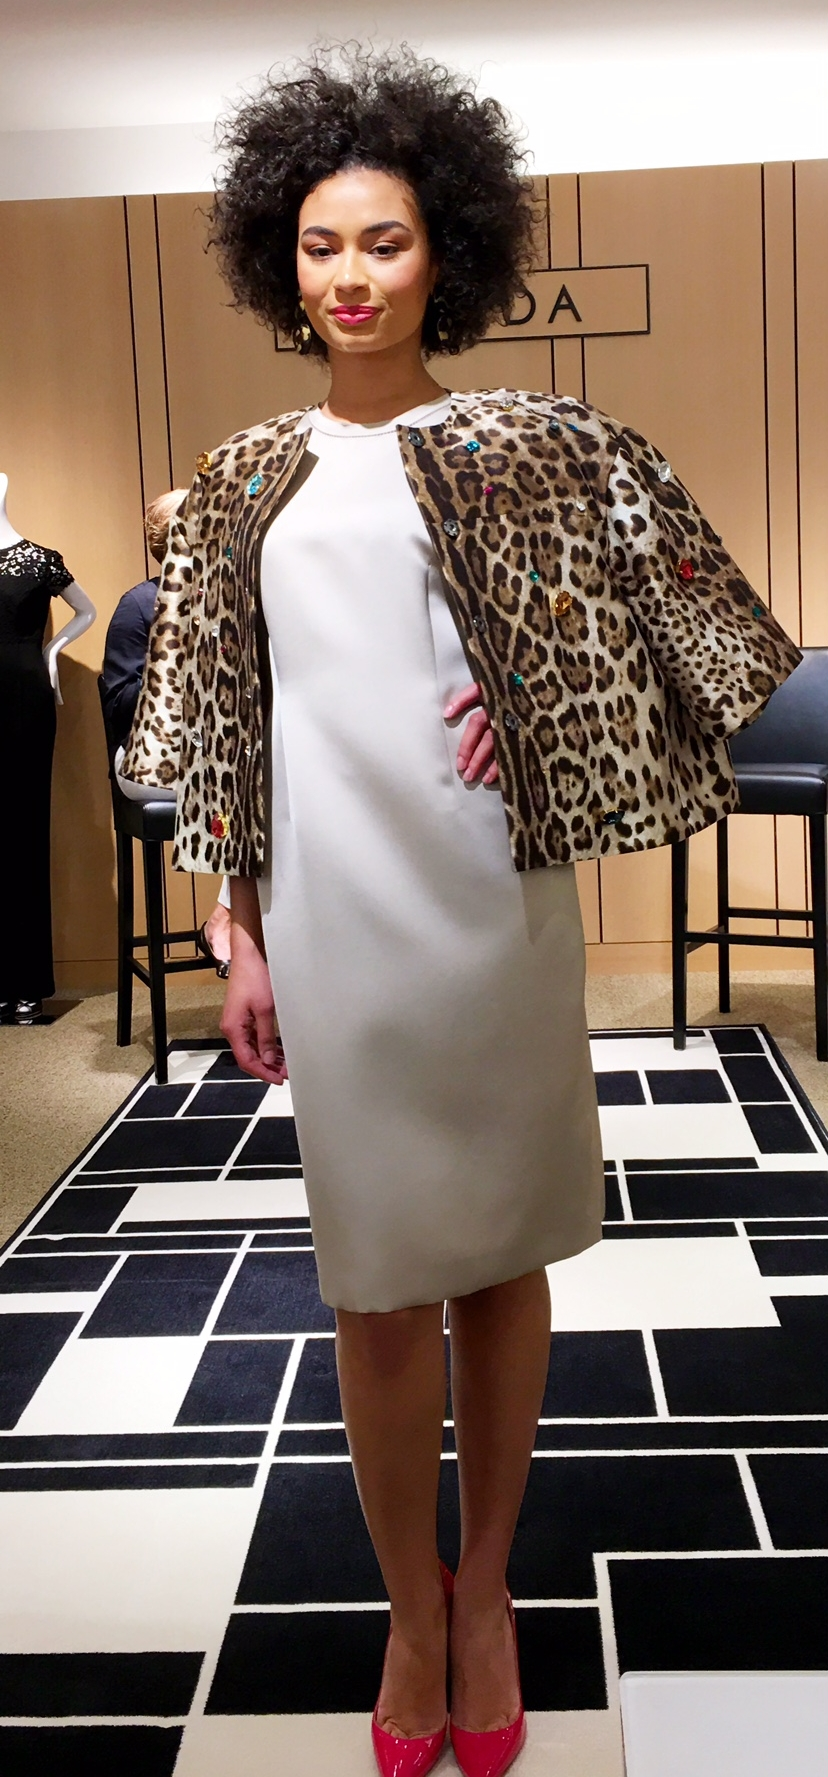 An elegant and exciting spring look from Neiman Marcus at SouthPark mall: An Escada dress, Dolce & Gabbana animal print embellished jacket and pink patent leather shoes.